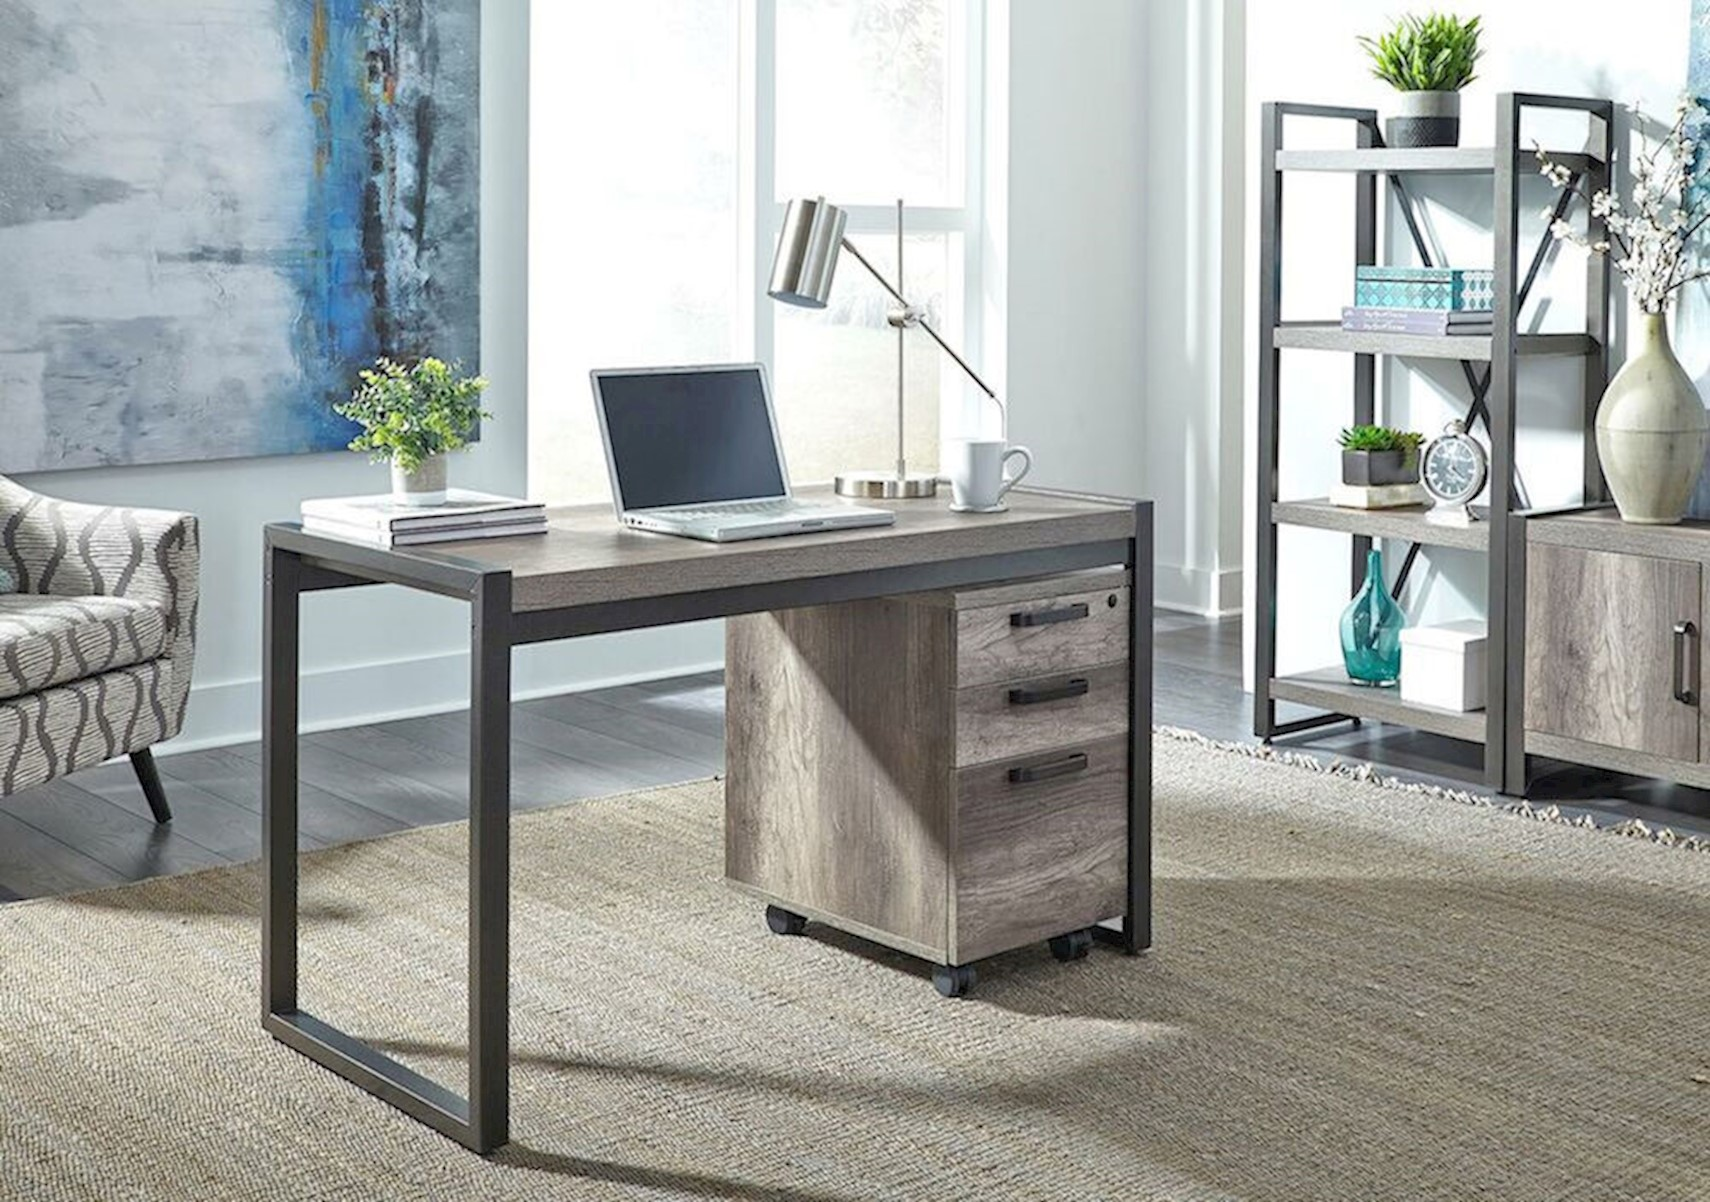 Lacks | Tanners 2-Pc Desk with File Cabinet